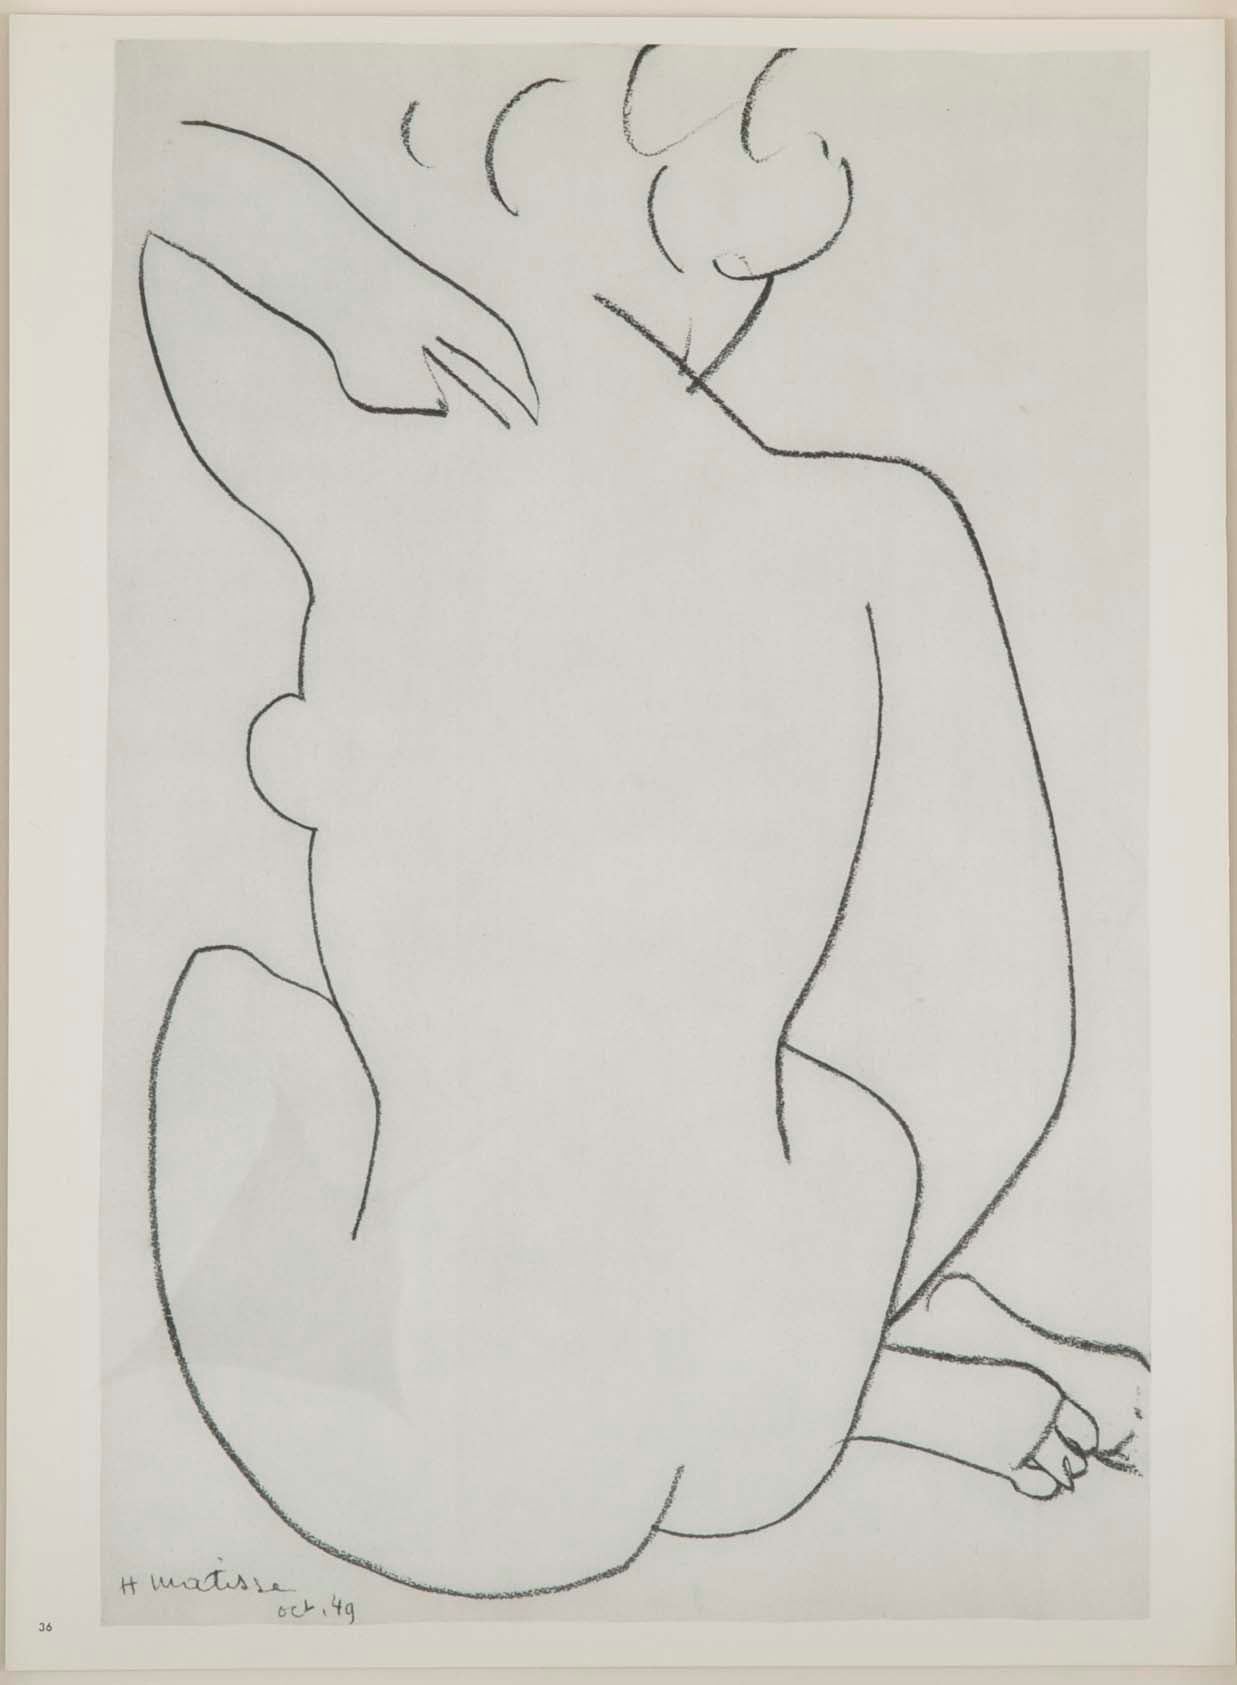 A Set of Four Lithographs of Drawings by Henri Matisse